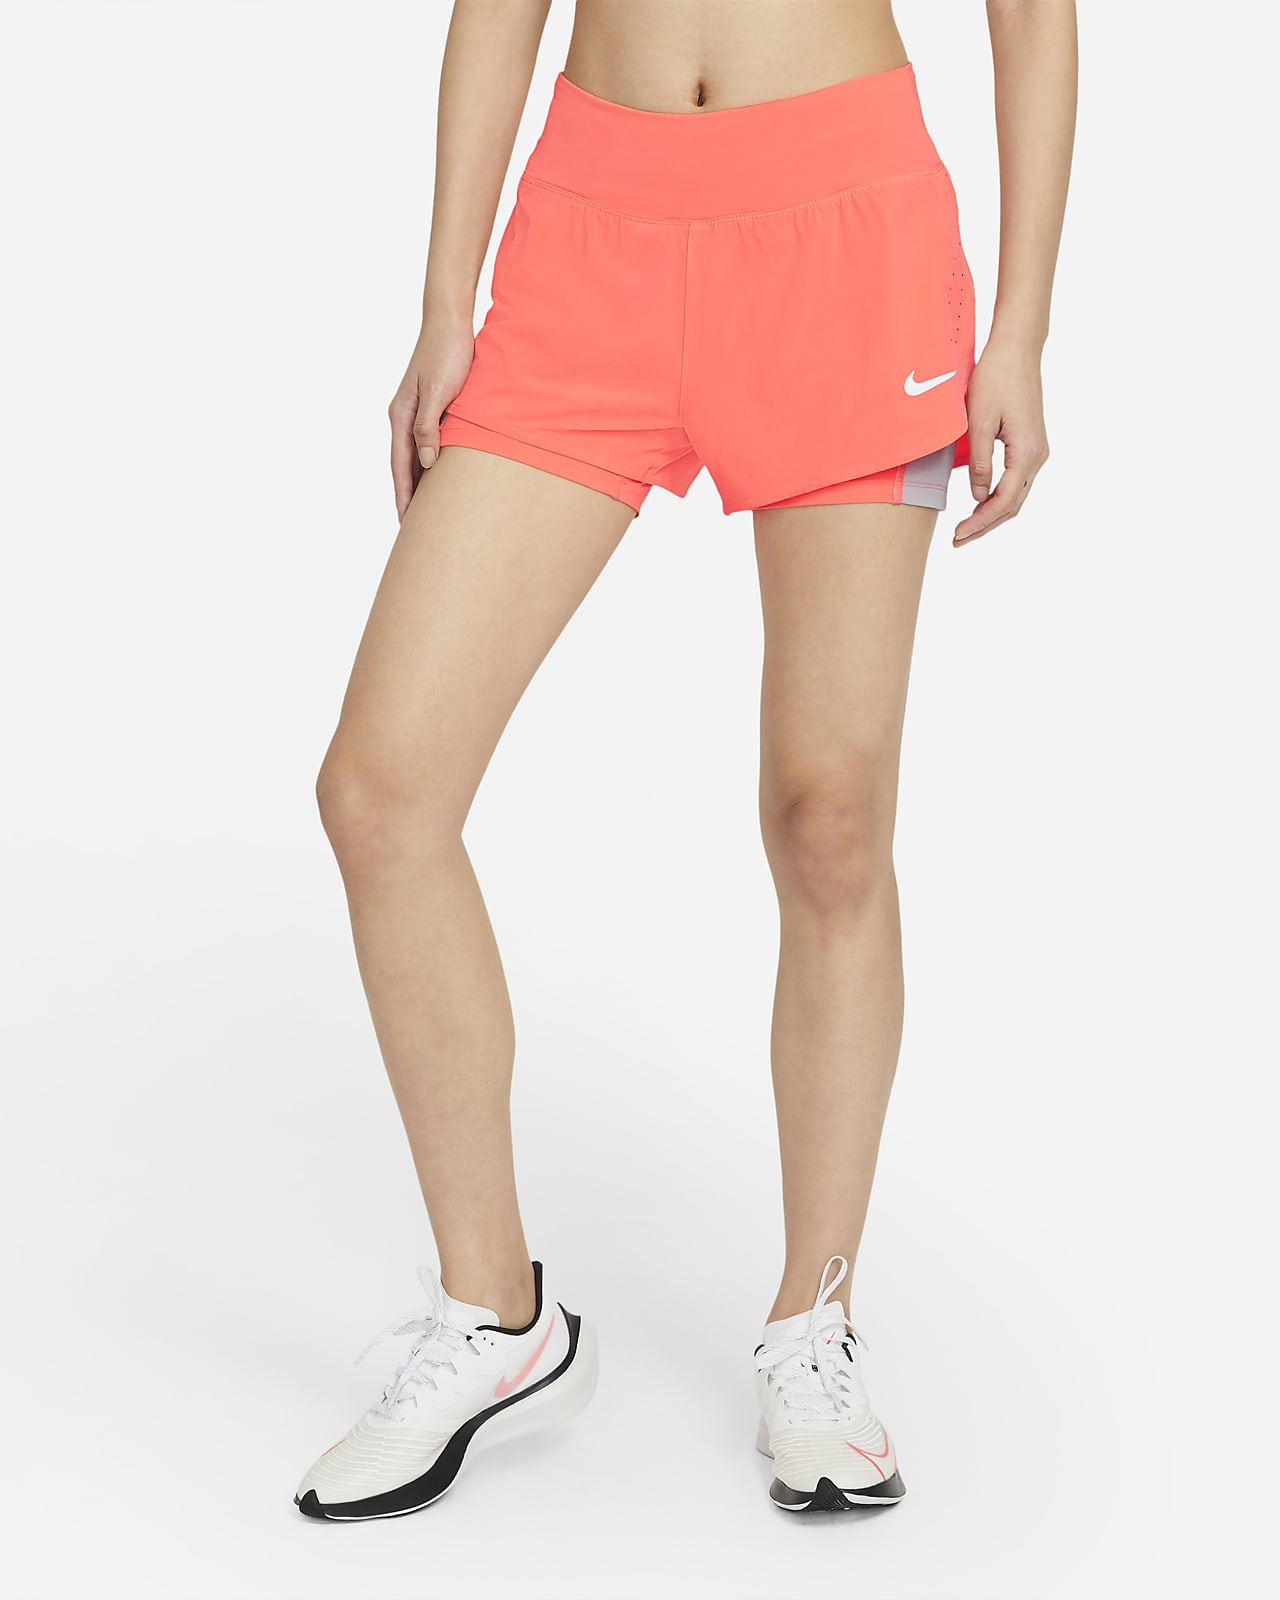 Nike Eclipse Women's 2-In-1 Running Shorts